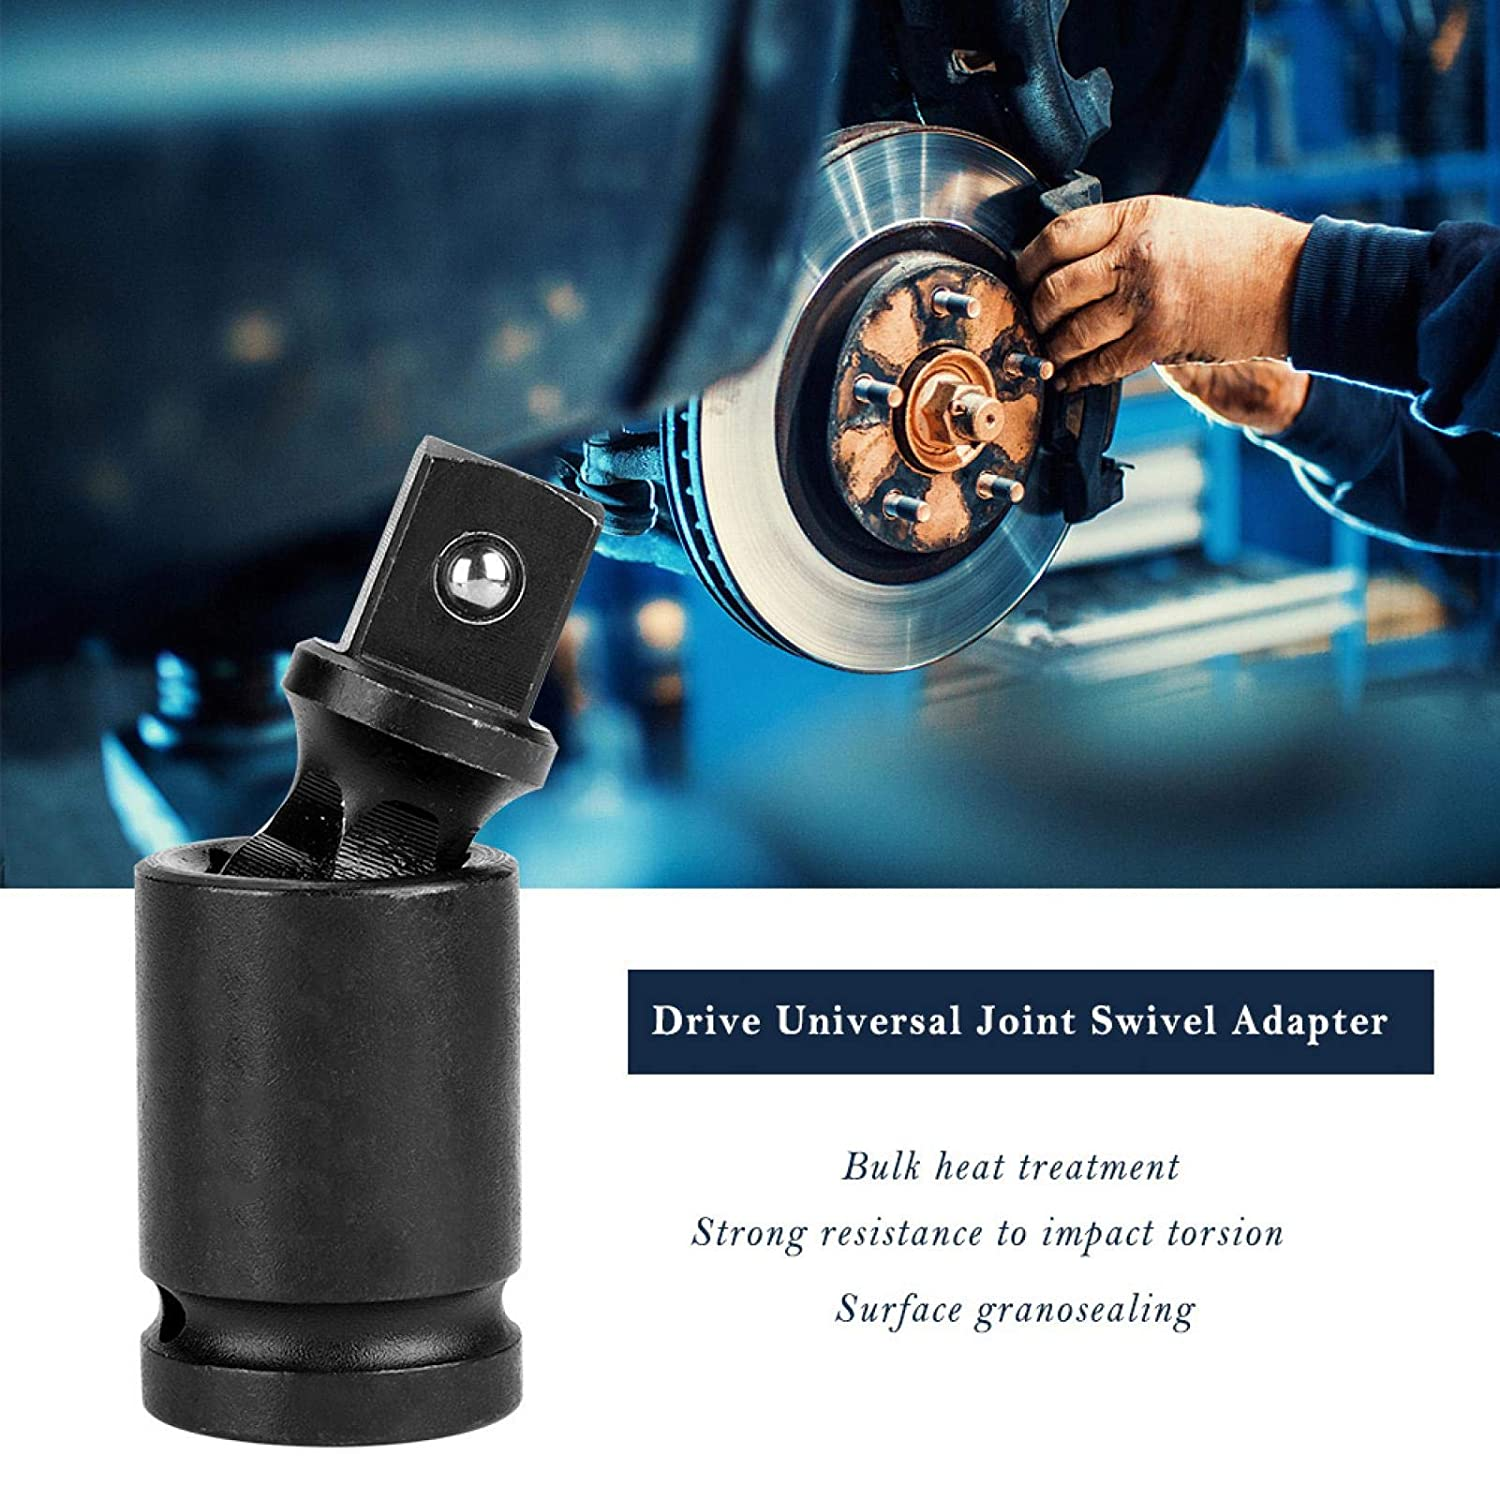 Air Impact Socket Durable Solid Portable Shipbuilding Auto Repair for Metallurgy Mining Rotate 360 /° Universal Joint 3//4 inch